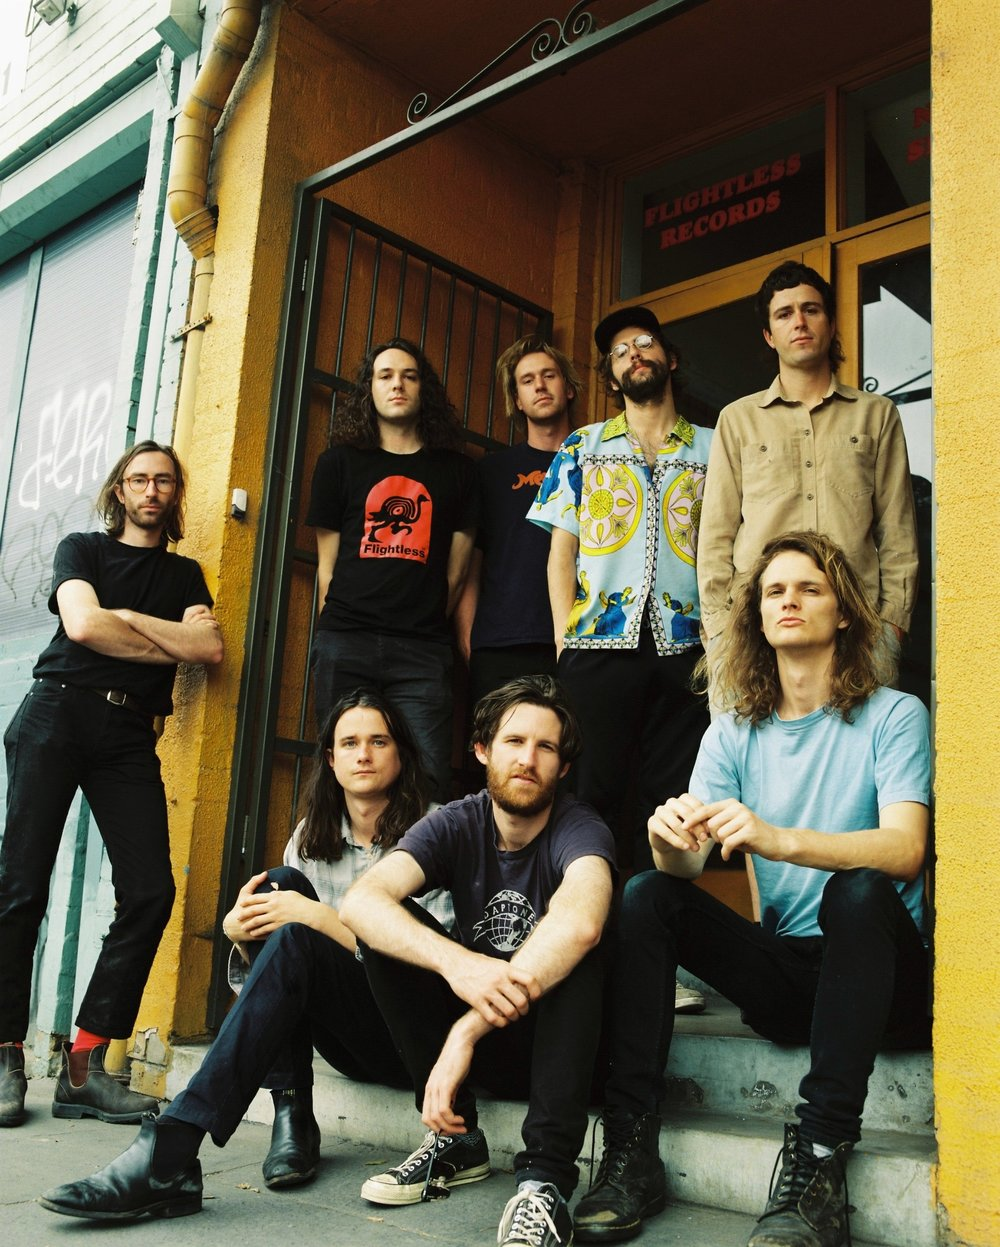 King Gizzard & The Lizard Wizard, photo courtesy of KG&LW management